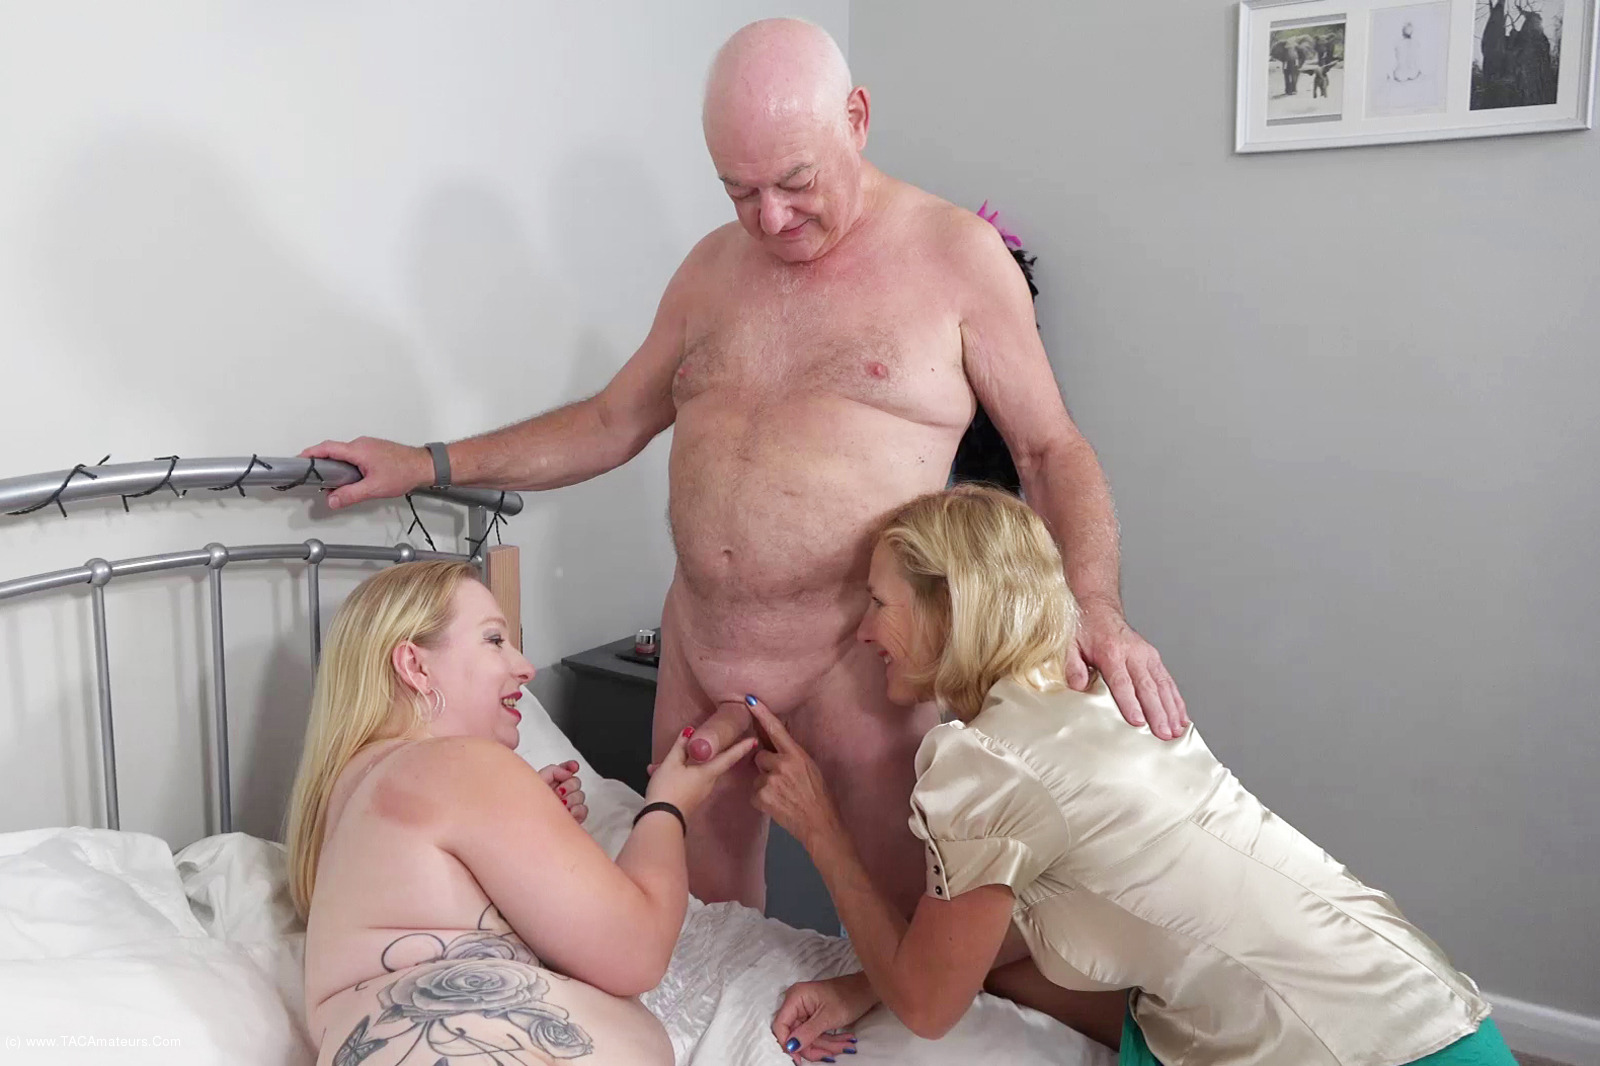 DirtyDoctor - The Window Cleaner Pt1 scene 0